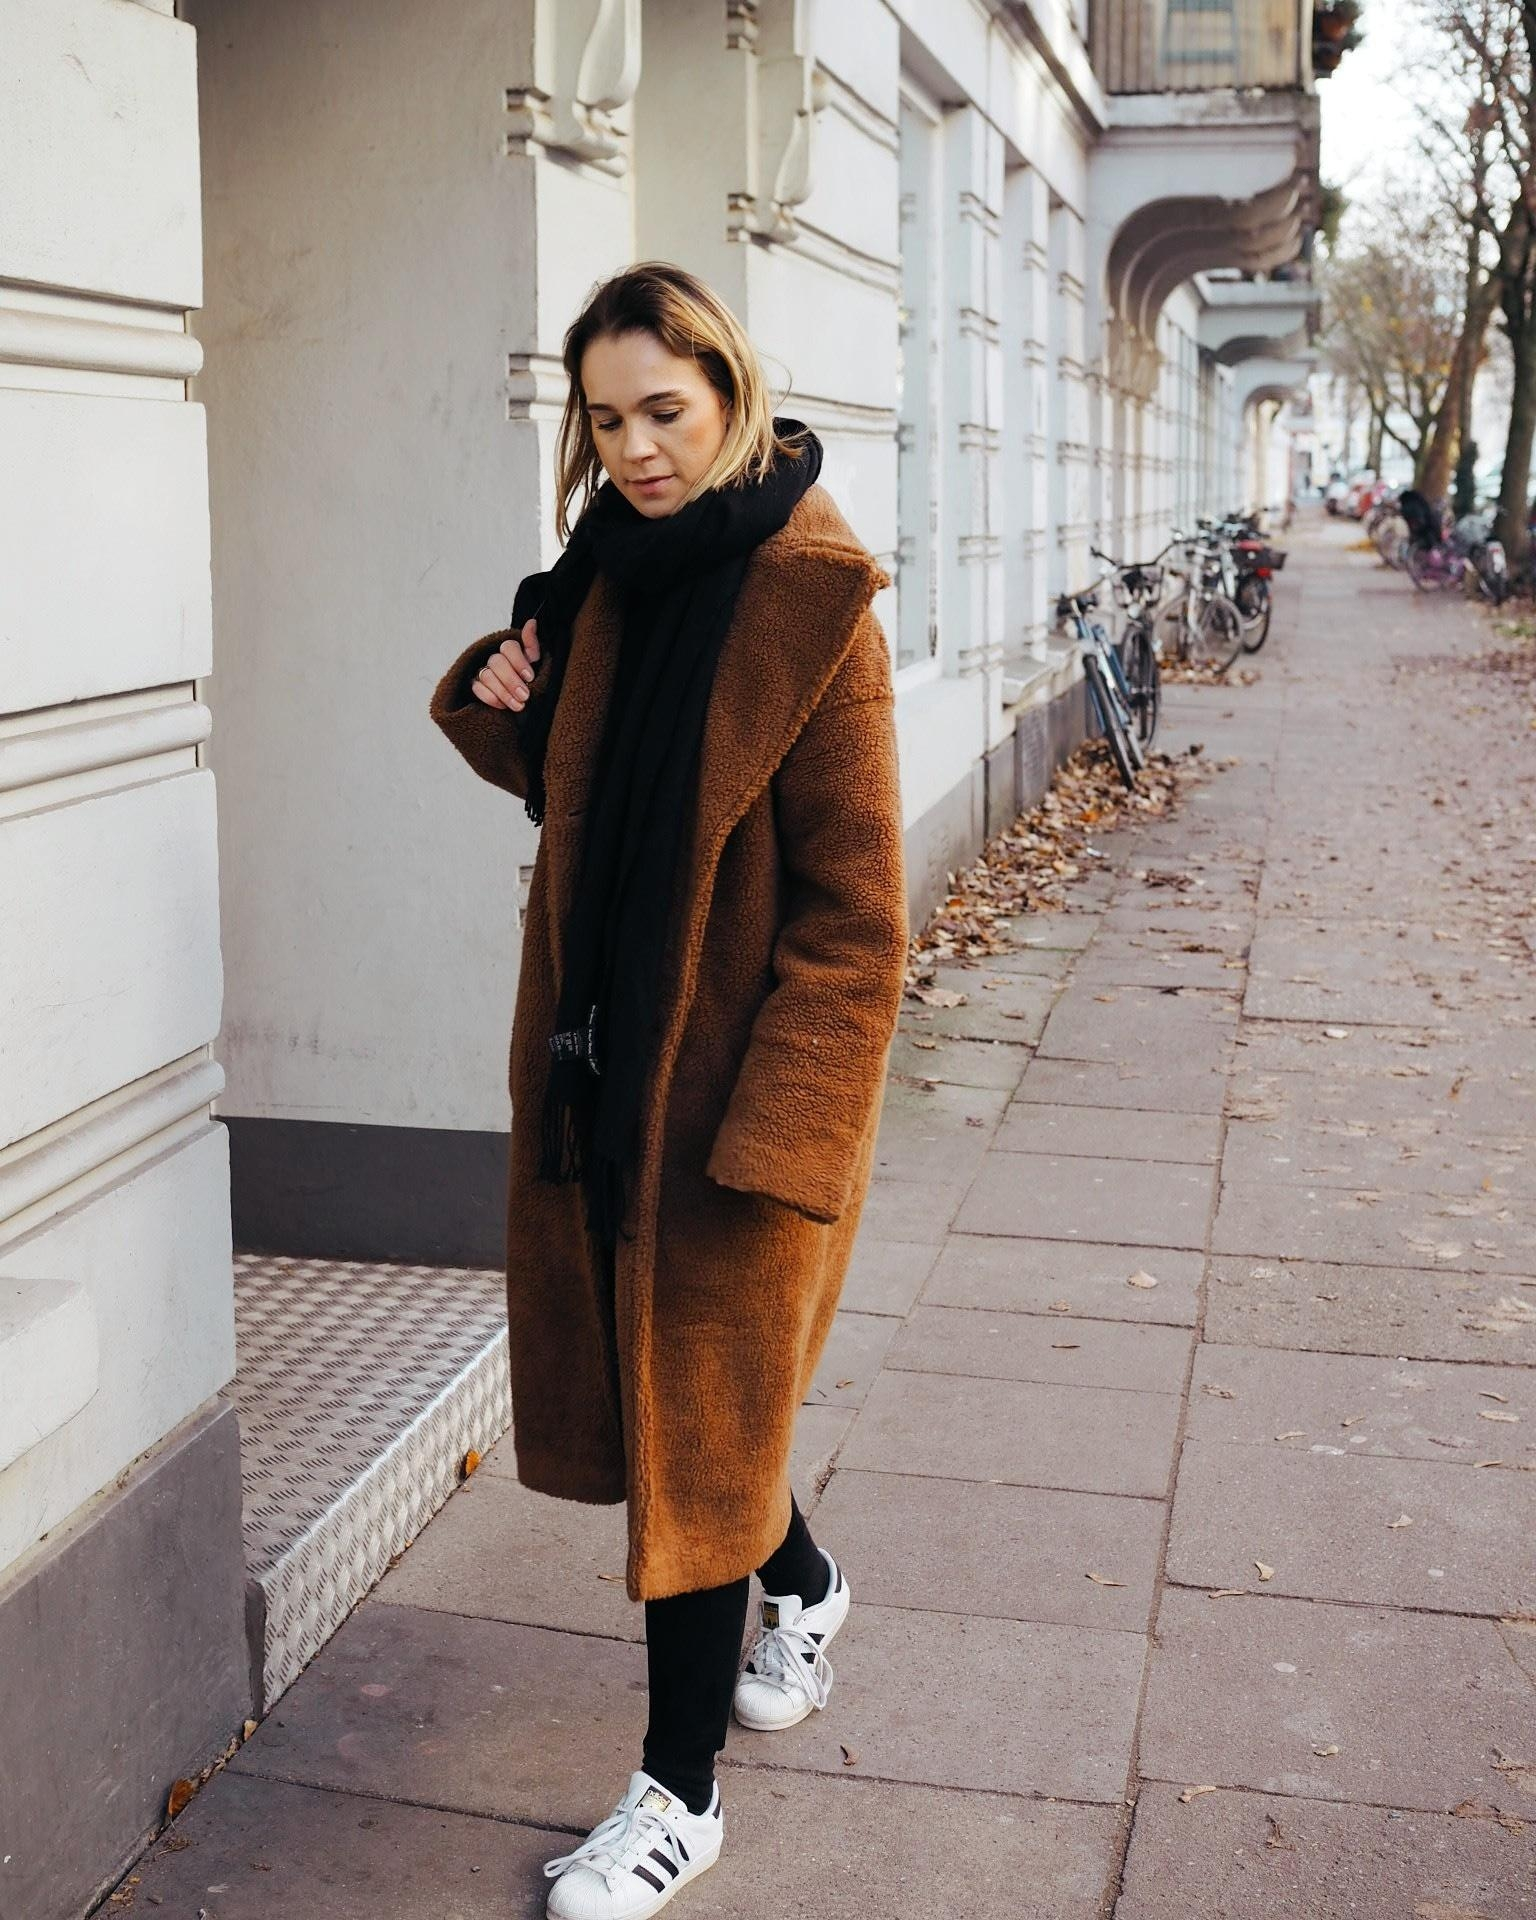 🐻 #teddycoat #teddymantel #herbstlook #fashioncrush #fashion #streetfashion